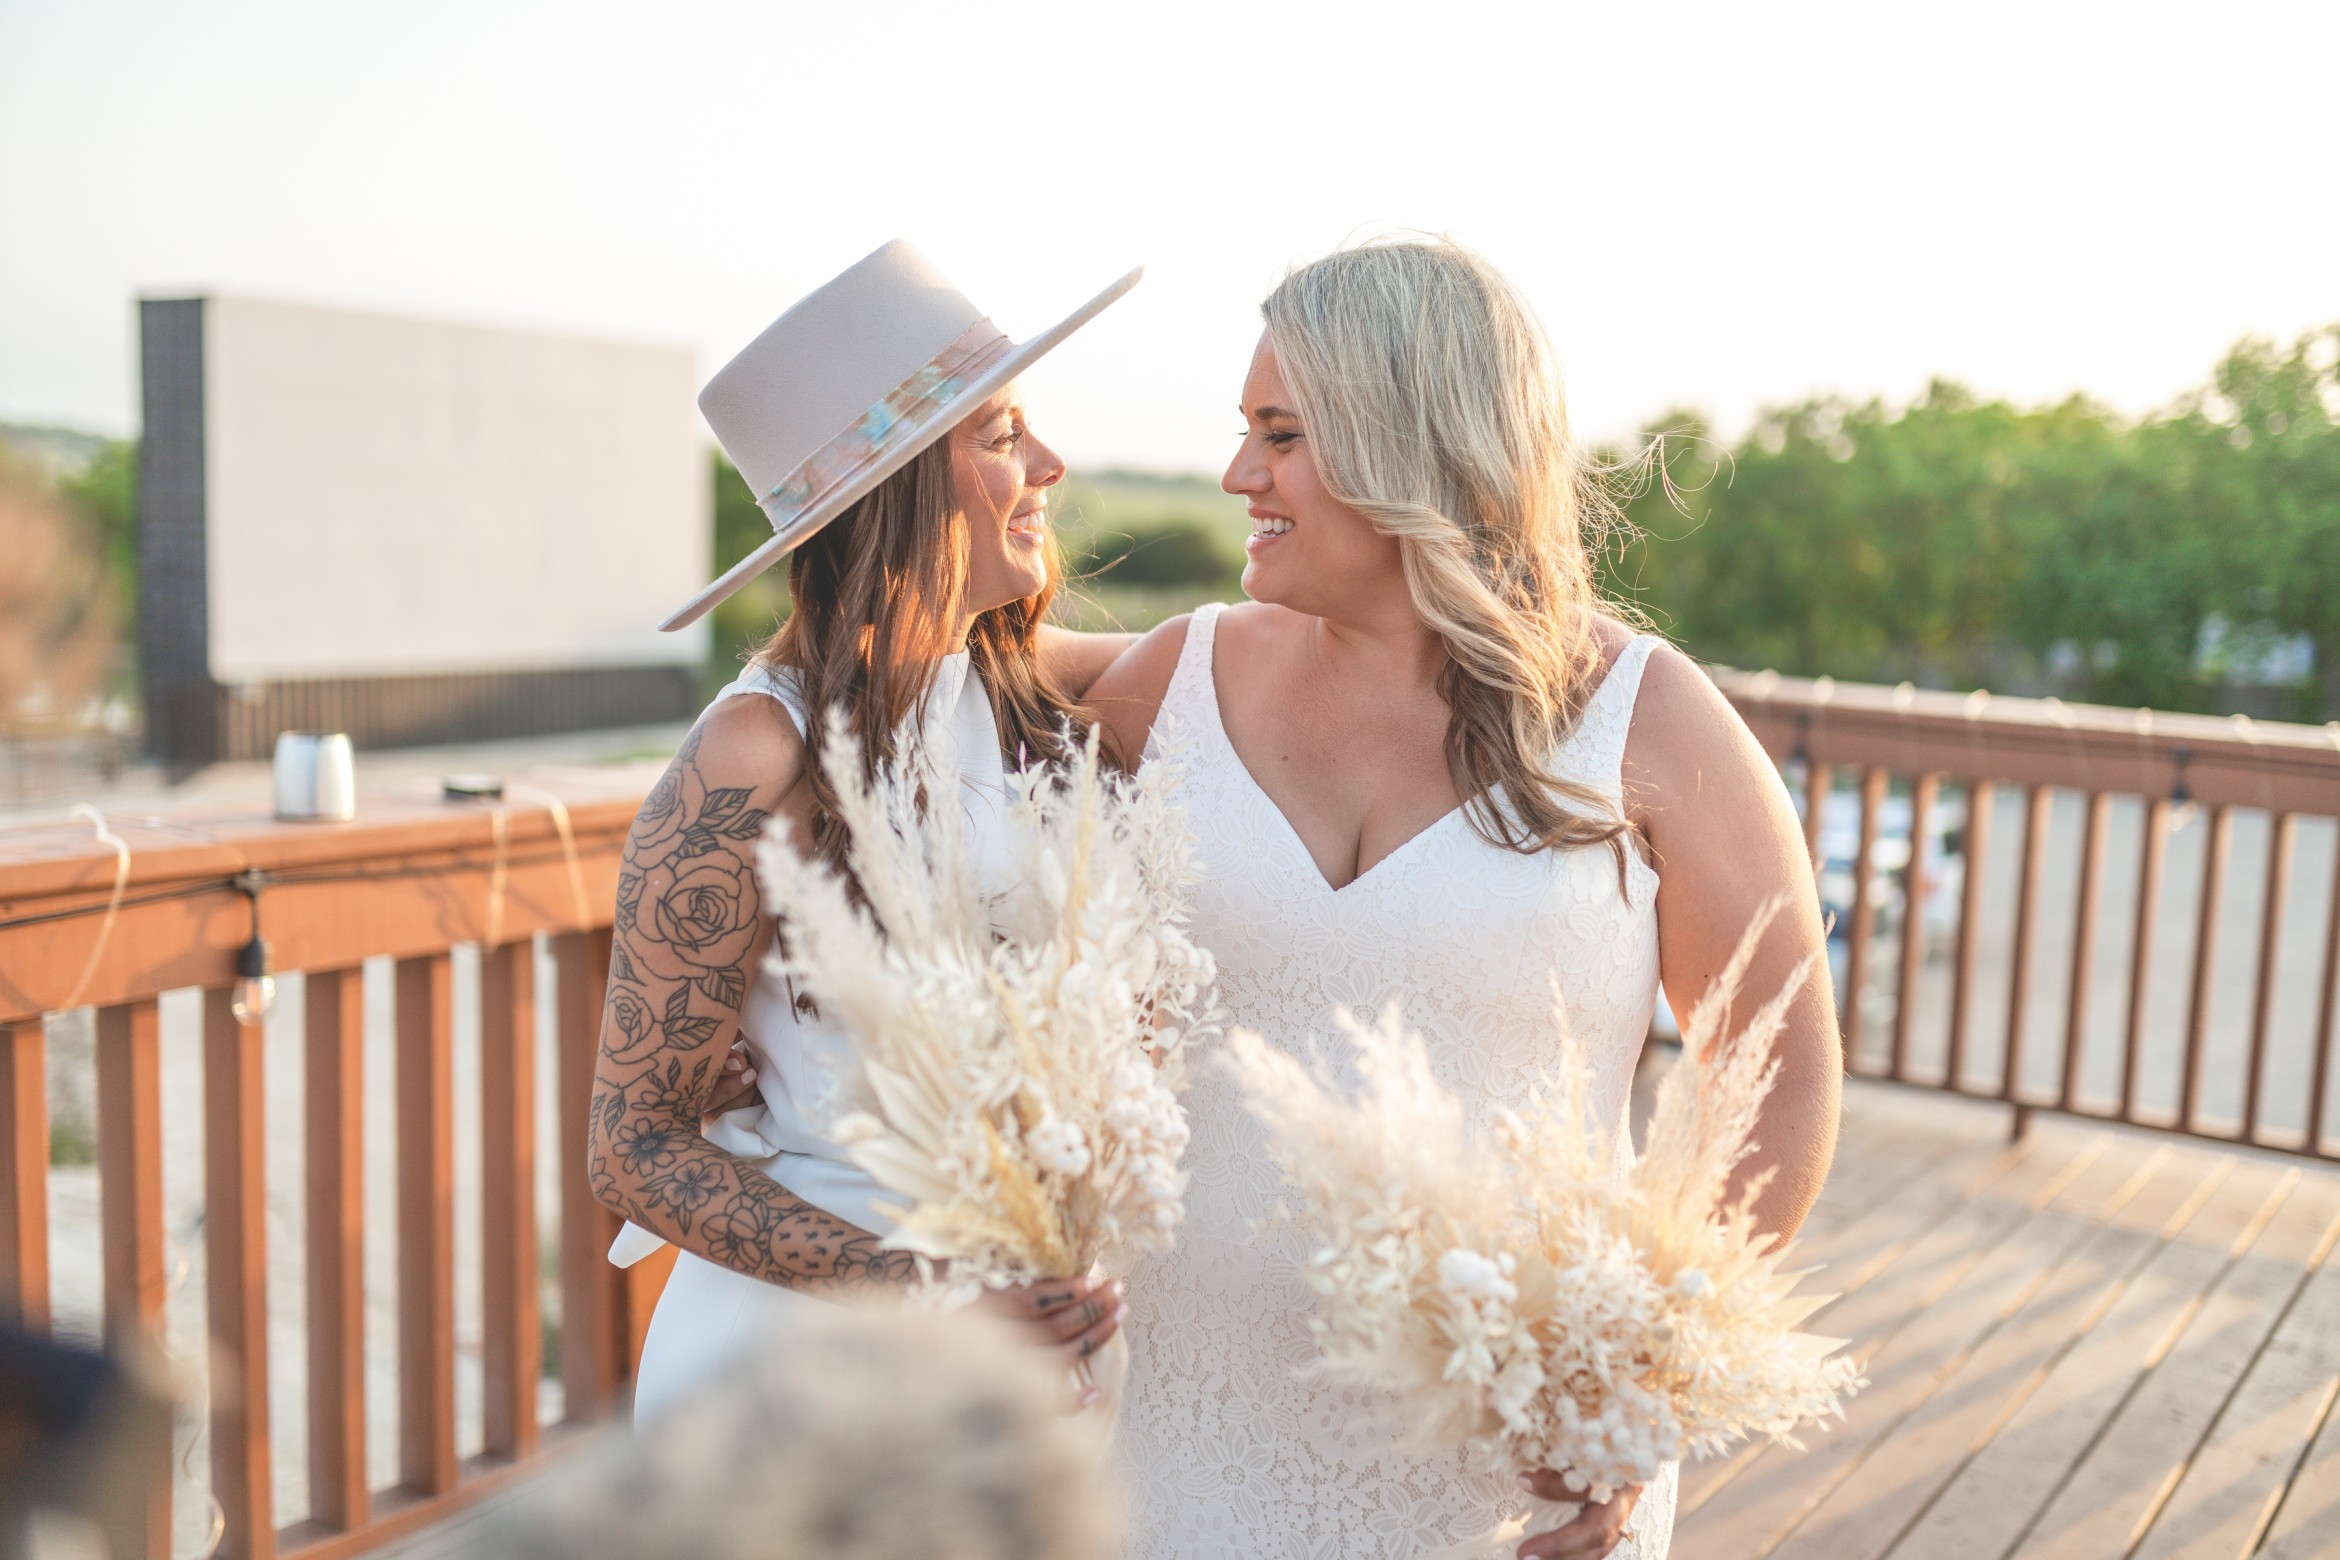 Pandemic Wedding- LGBT Wedding- Unique wedding bouquets- Texas Wedding- Greg Fulks Photography- Pop up wedding- lesbian wedding